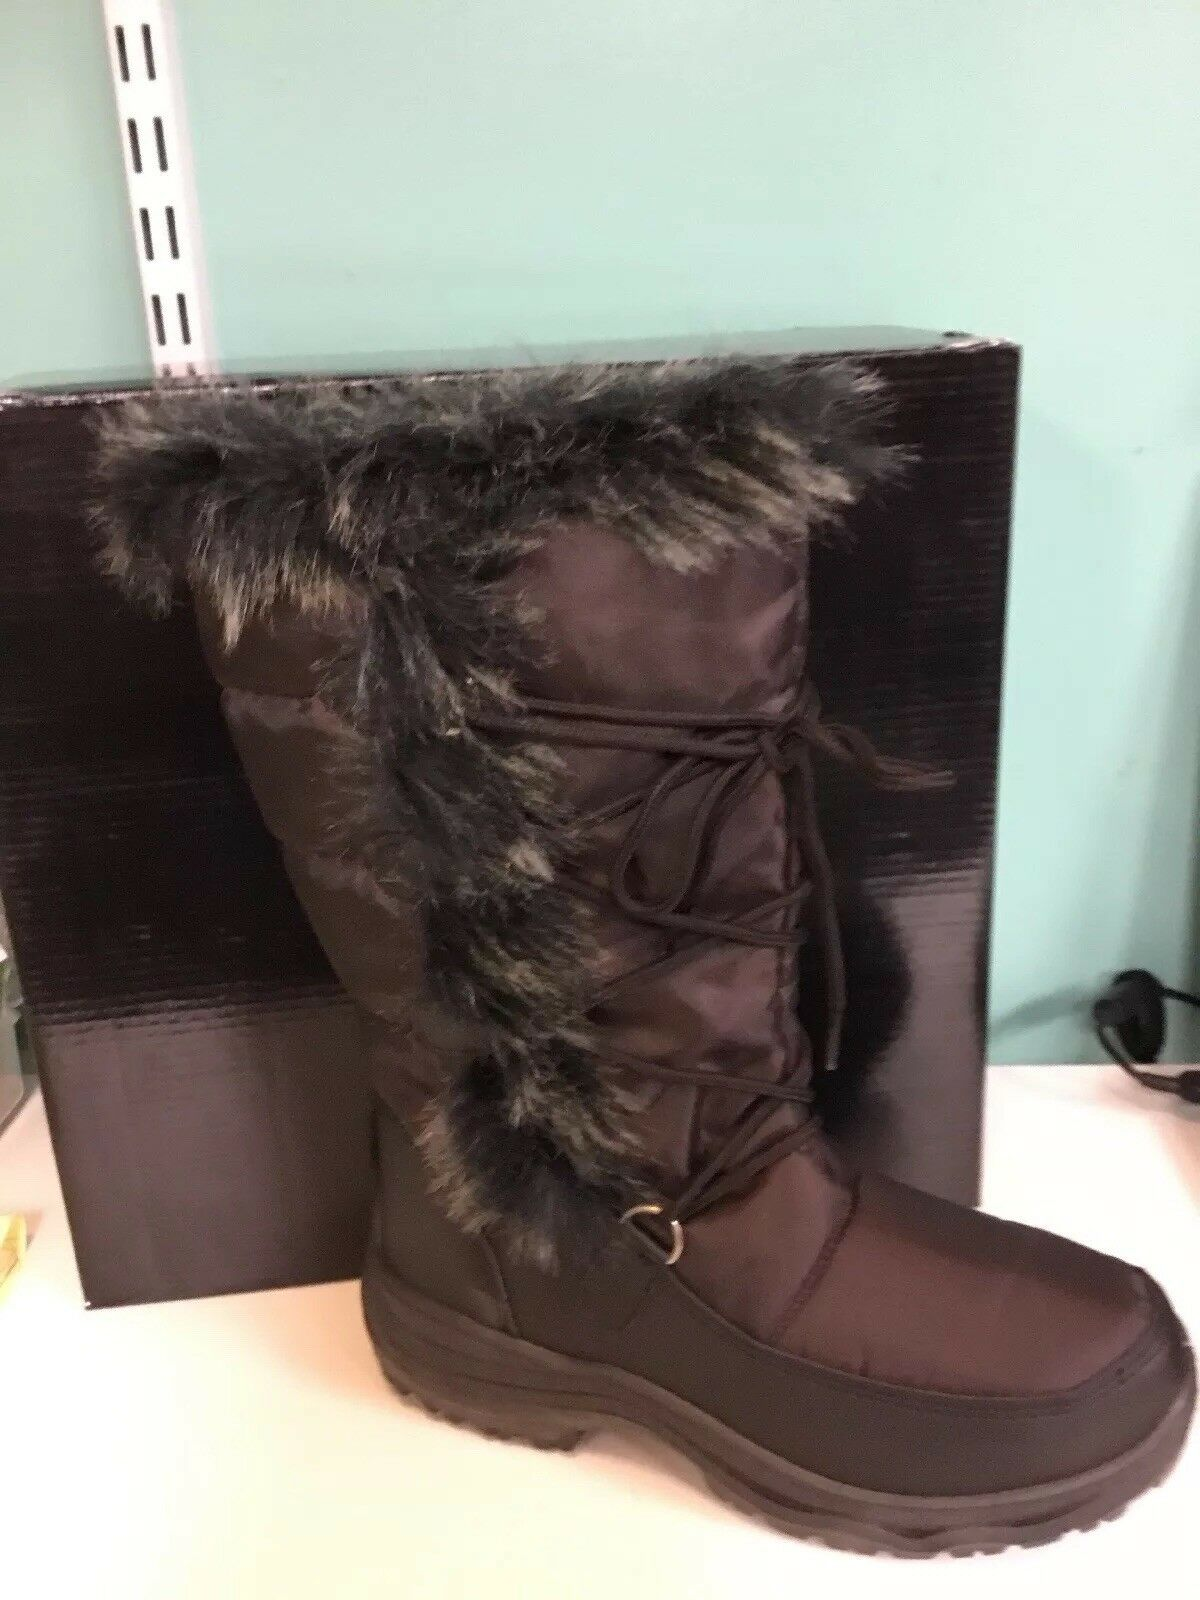 New Womens Winter Snow Boots Brown Size 6